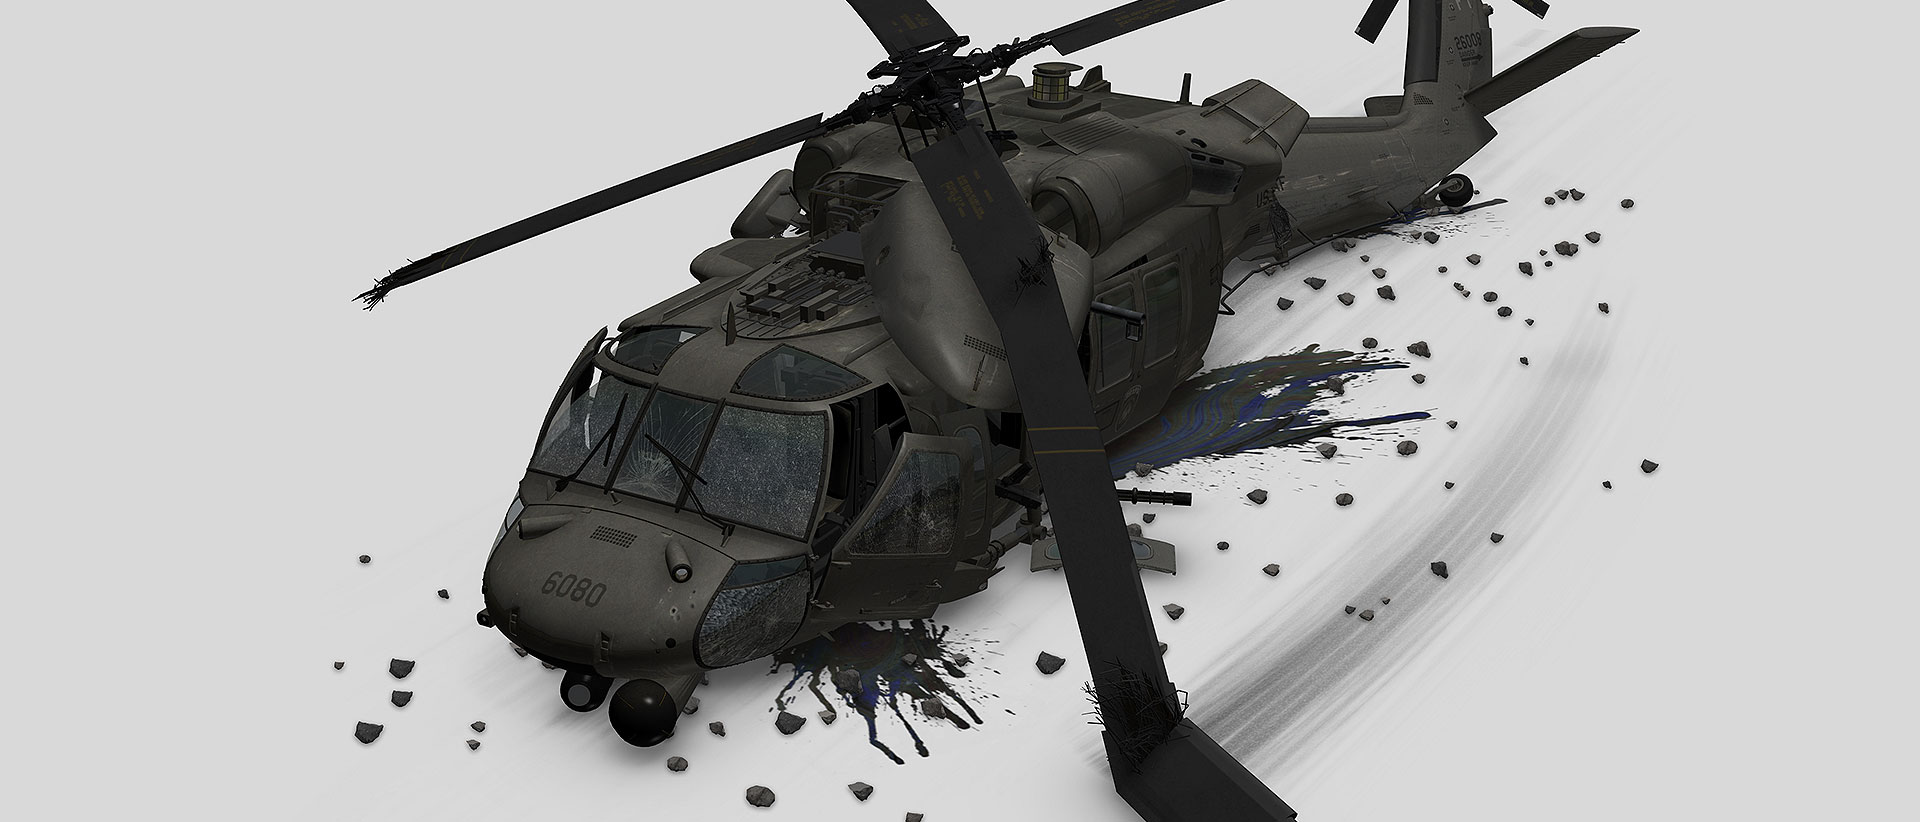 3D Blackhawk helicopter model with debris on white background